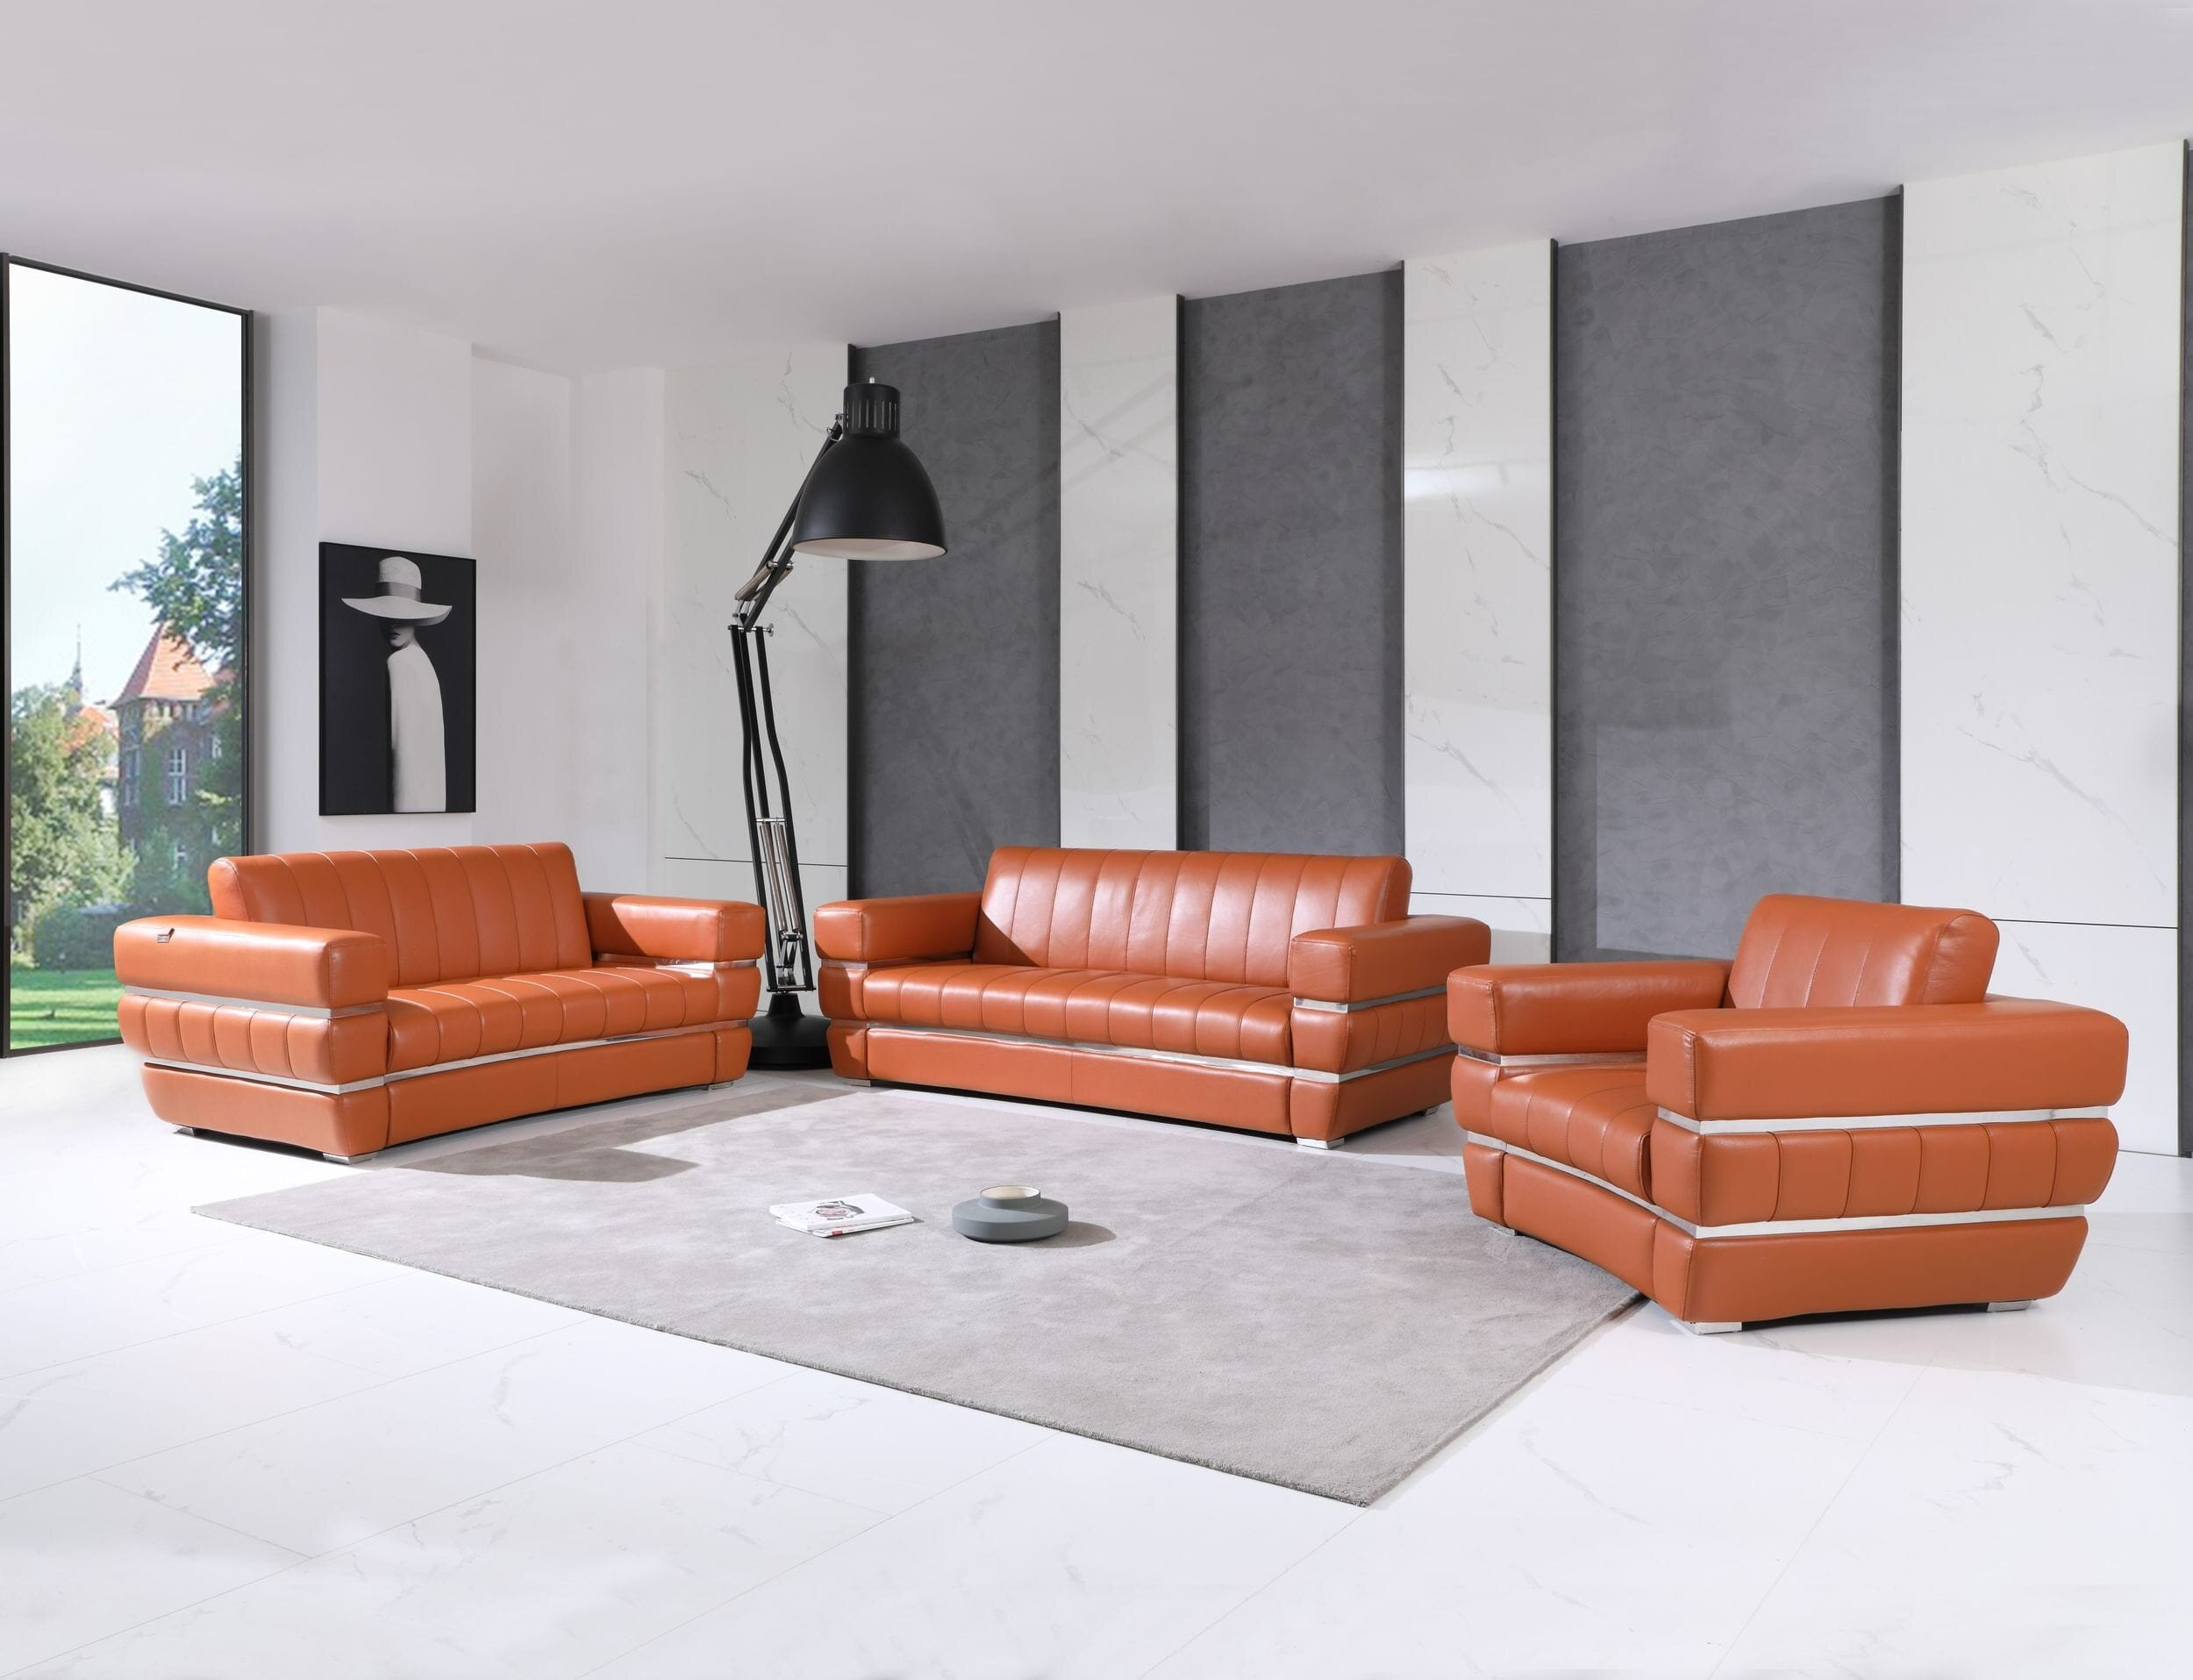 3 Piece Living Room Sets You Ll Love In 2021 Wayfair